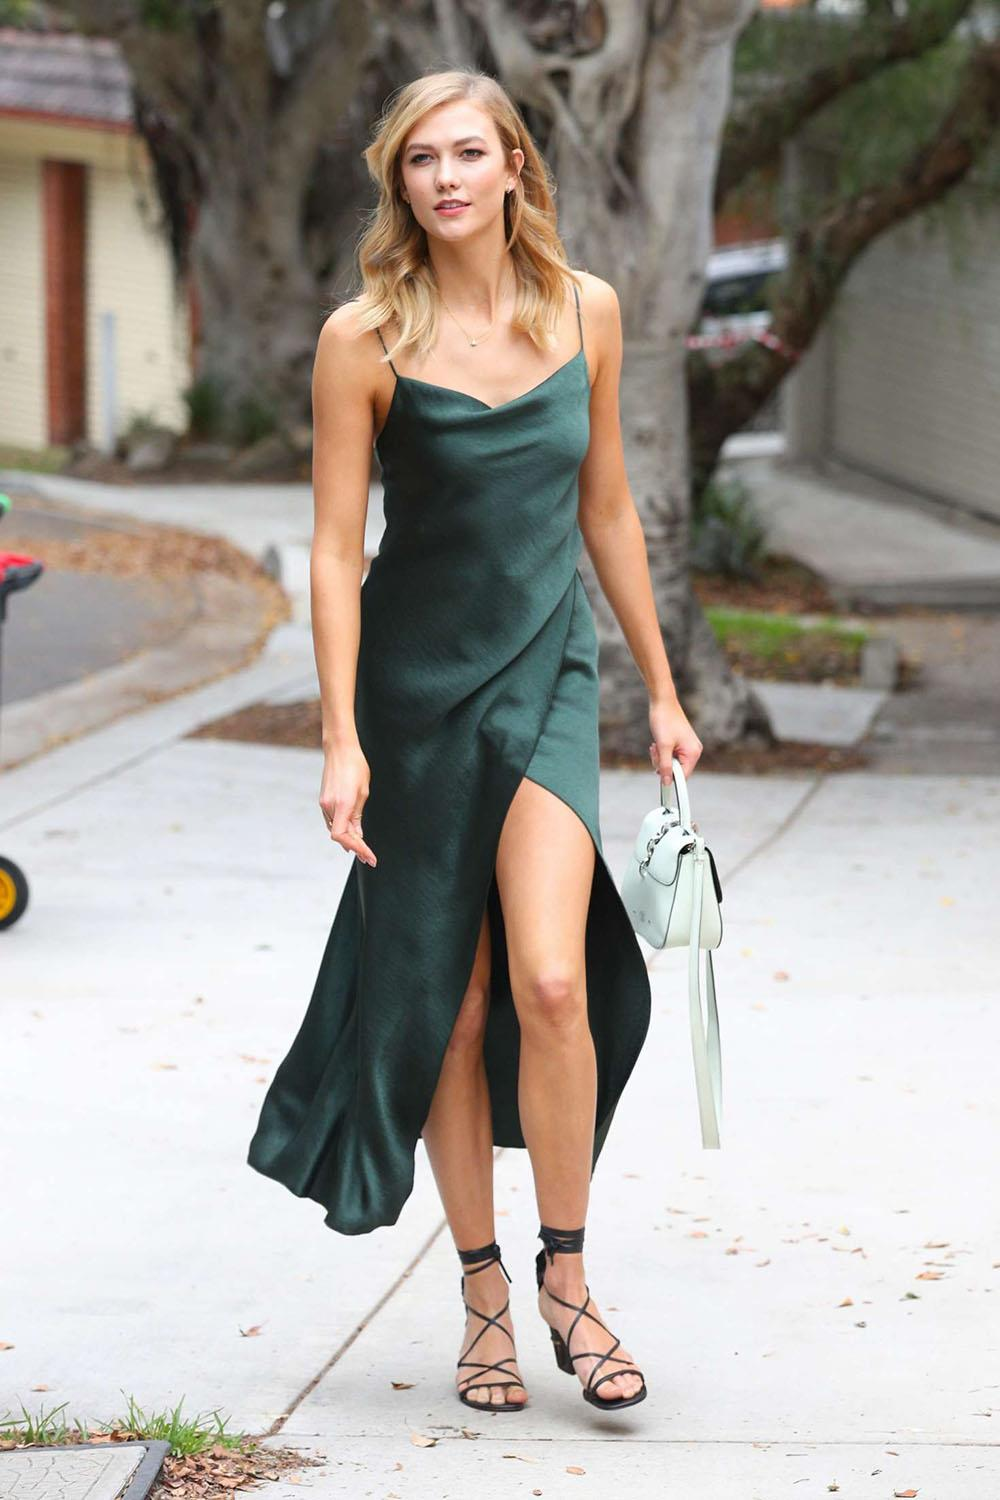 Karlie-Kloss -Wearing-a-green-dress--06. Al estilo de Karlie Kloss